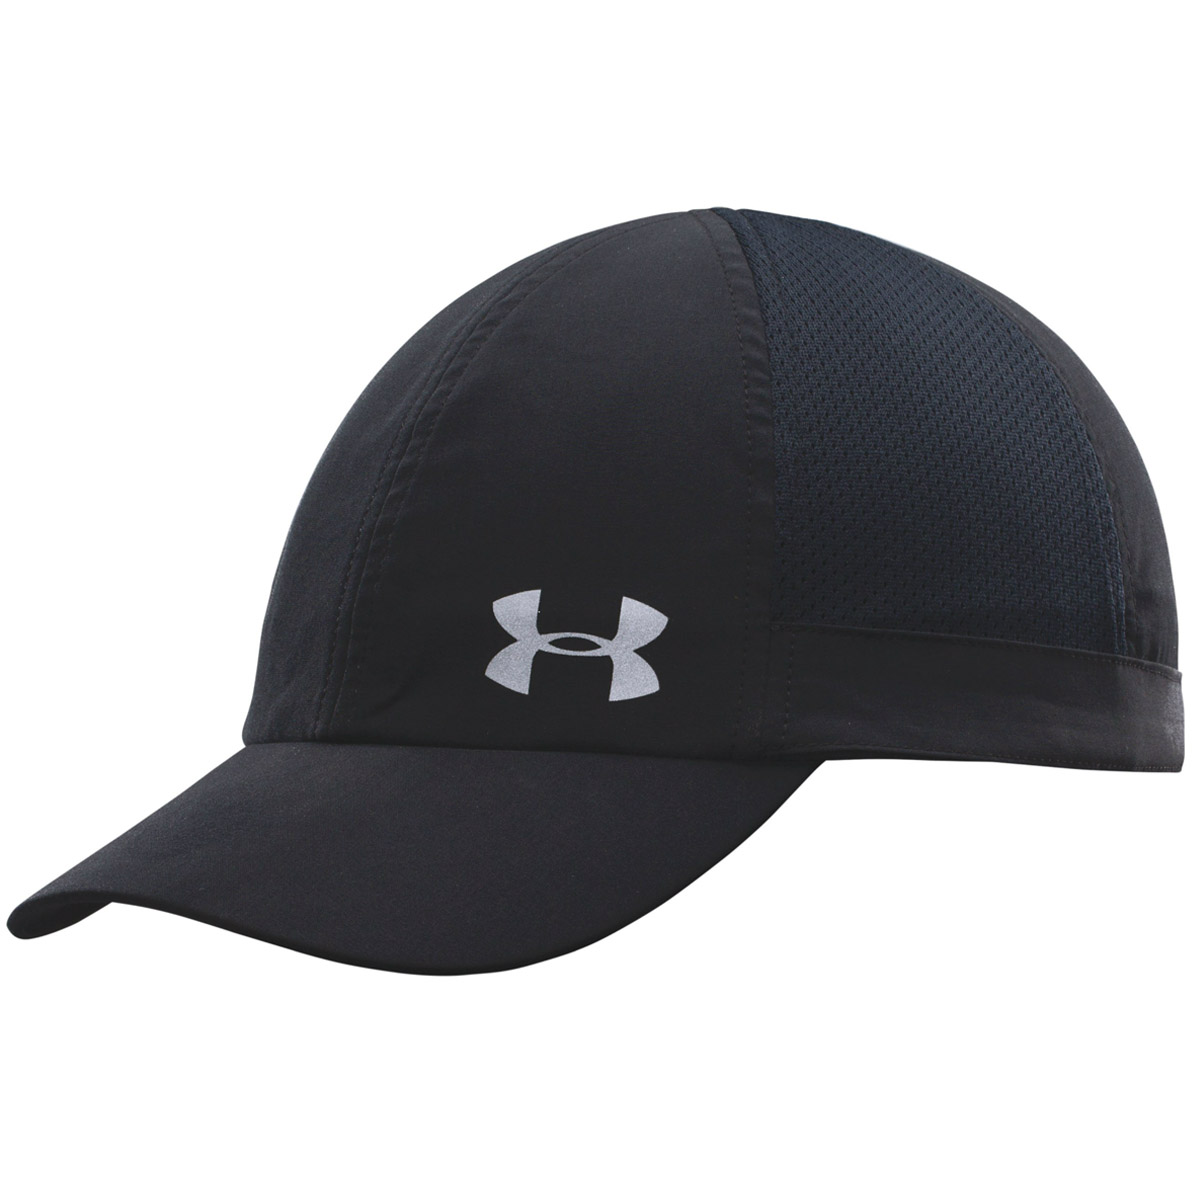 722ed05c7bf under armor cap cheap   OFF35% The Largest Catalog Discounts